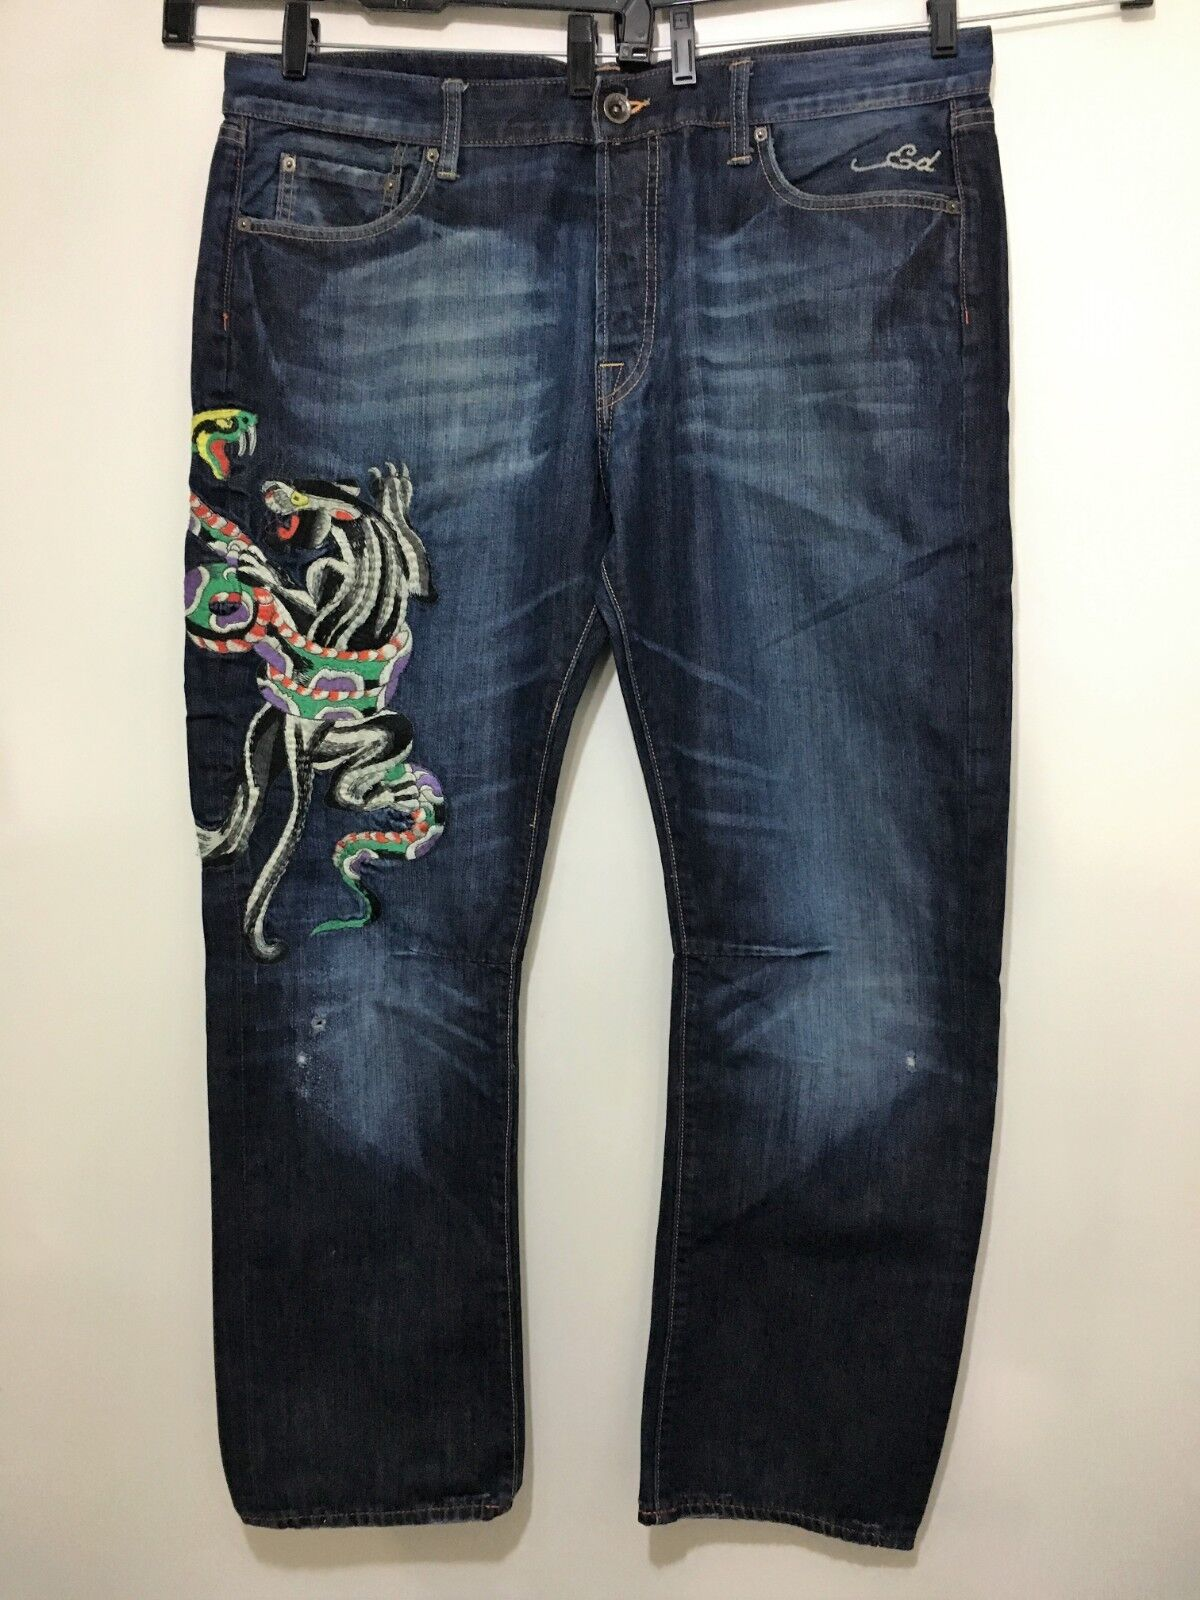 Ed Hardy bluee Jeans Men 40 x 32 Embroidered Snakes Tigers 2008 Distress 4 Button